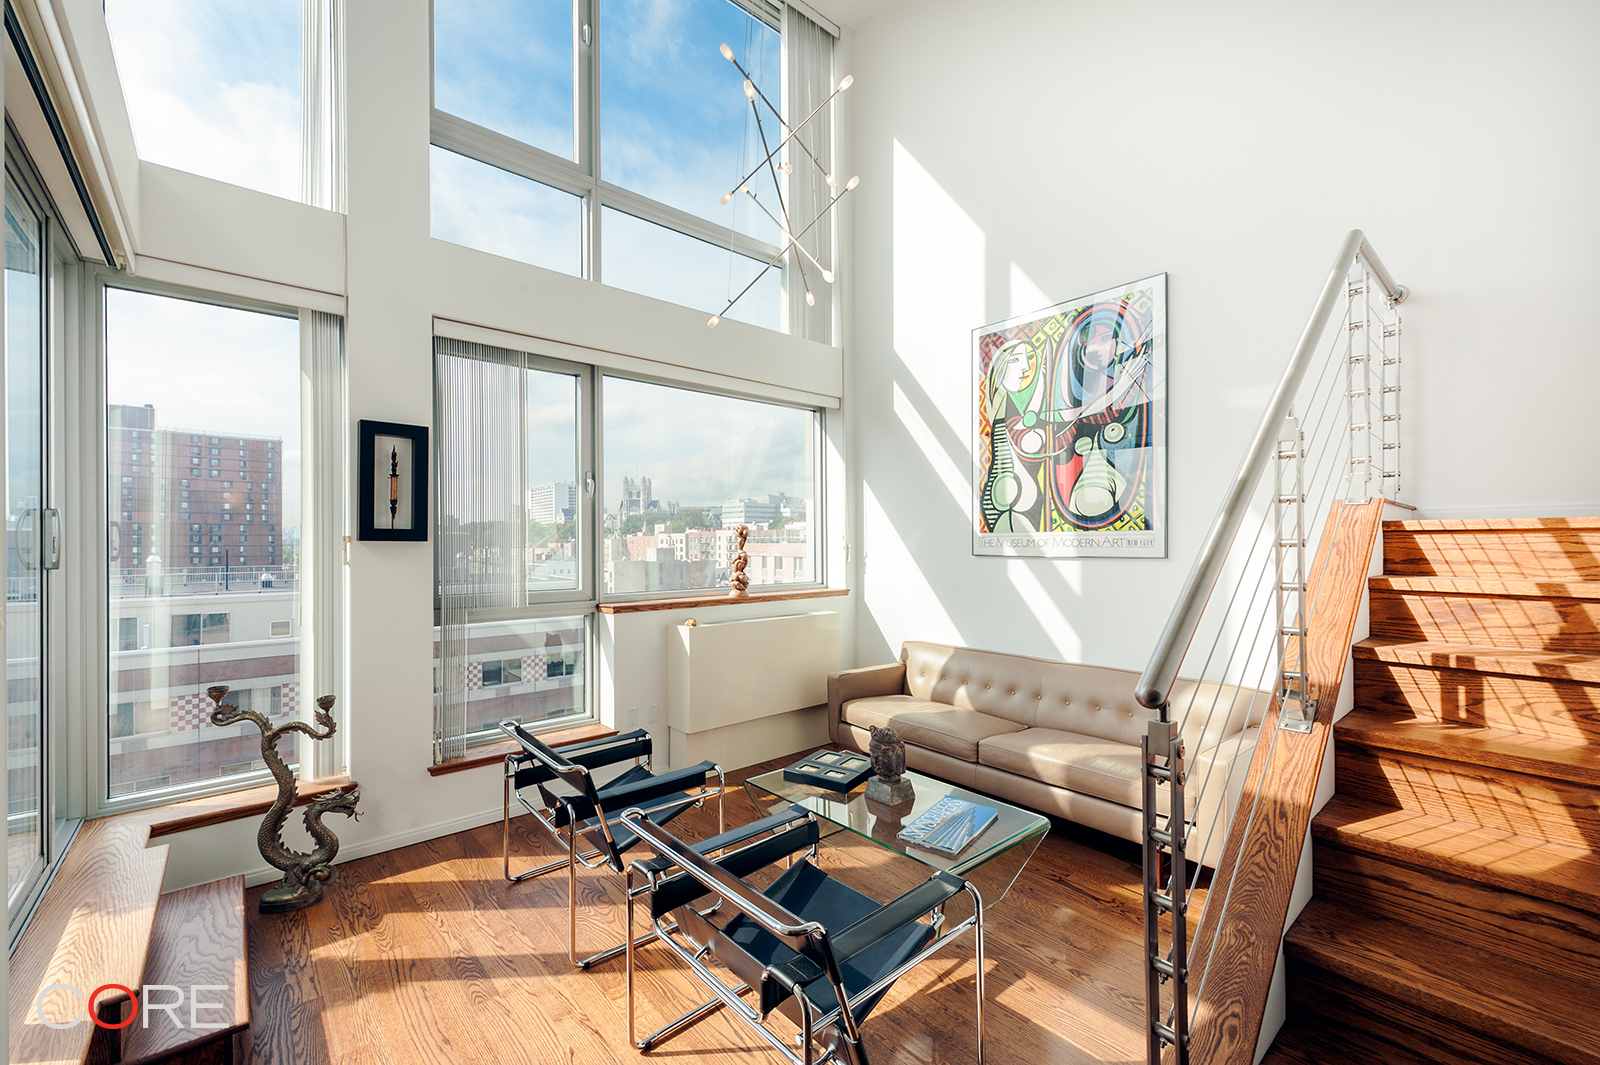 Please copy this URL to view a 3D tour: https://my.matterport.com/show/?m=fqSPcbnHMDT   Welcome home to this rarely-available three-bedroom, two-bath full-service condominium penthouse with a private terrace, and southern exposures over a skyline view of Hamilton Heights and City College's neo-Gothic architecture. Penthouse L is a duplex with nine-foot ceilings throughout, as well as a double-high atrium living room that is over 18 feet tall with double-height windows.  The unit boasts European white oak strip flooring that has been refinished to a rich walnut tone, and Crema Pearl Italian marble in the master bath with Hans Grohe fixtures. The kitchen is equipped with GE stainless appliances, a Positano stone countertop, Applewood veneer cabinetry, and an LG washer/dryer. The internal staircase has been upgraded to include a wood, wire and metal banister that adds elegance and air to the already stunning space. Double-pane windows keep the sounds of street traffic to a minimum, and an intricate system of blinds allows you to manage the sunlight exactly how you want it.  The Langston Condominium set a new standard in the Hamilton Heights/Sugar Hill area for quality of life when it was built in 2006. That standard has endured and the building has continued to be highly desirable. Located only two stops from Midtown on the A or D express trains, building amenities include a 24-hour attended lobby, live-in super, residents' gym, laundry, courtyard, on-site parking (extra fee), and all the conveniences of Jackie Robinson Park and 145th St.